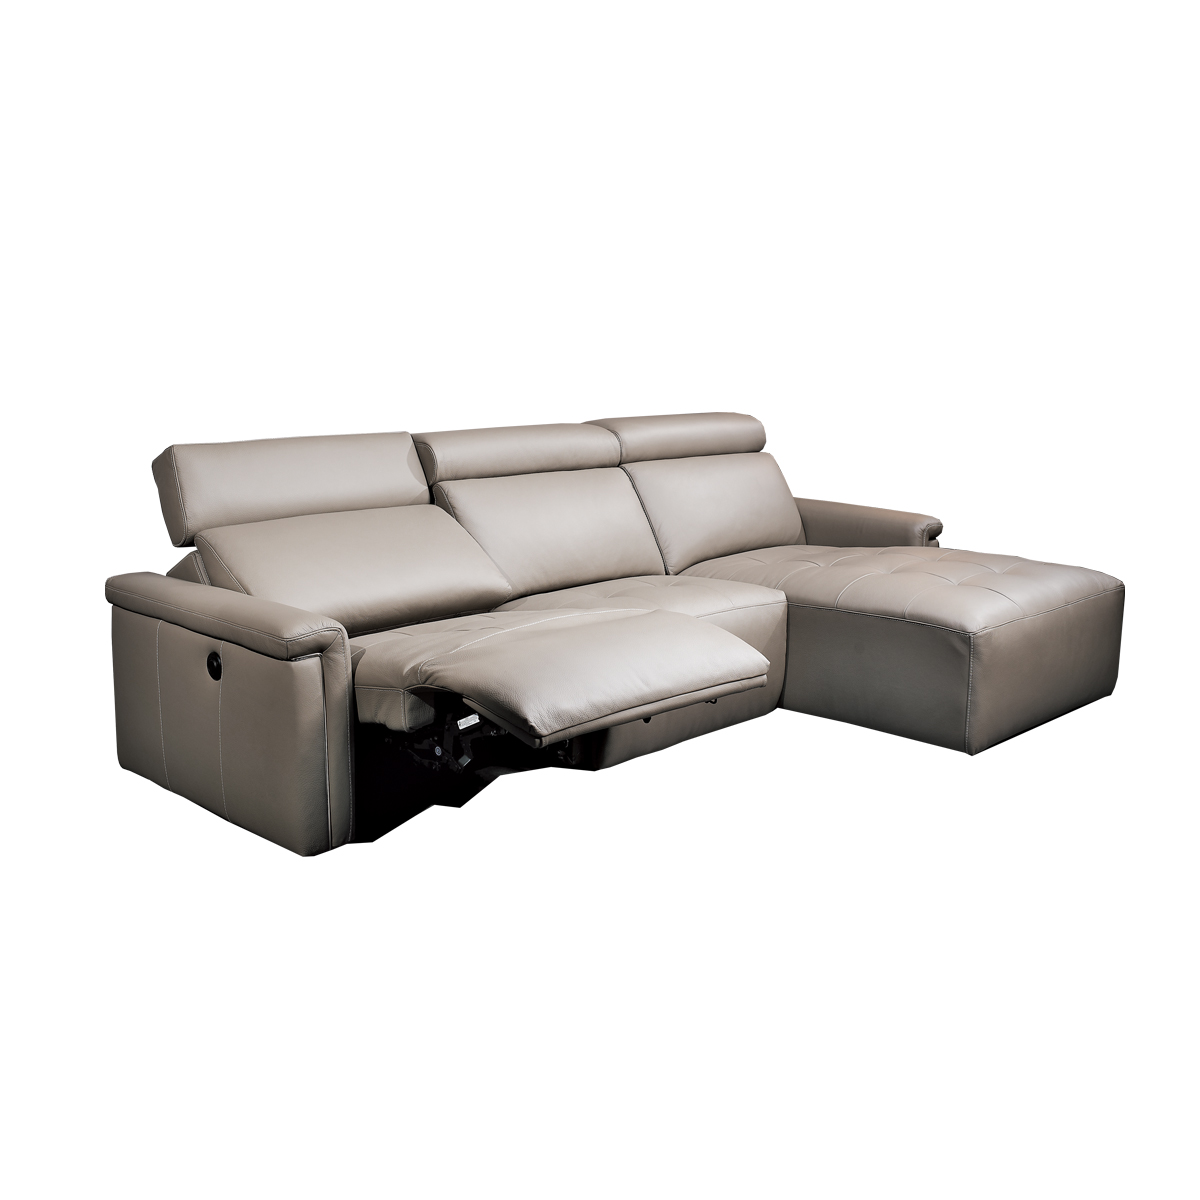 CASALE CHAISE WITH RECLINER Beyond Furniture